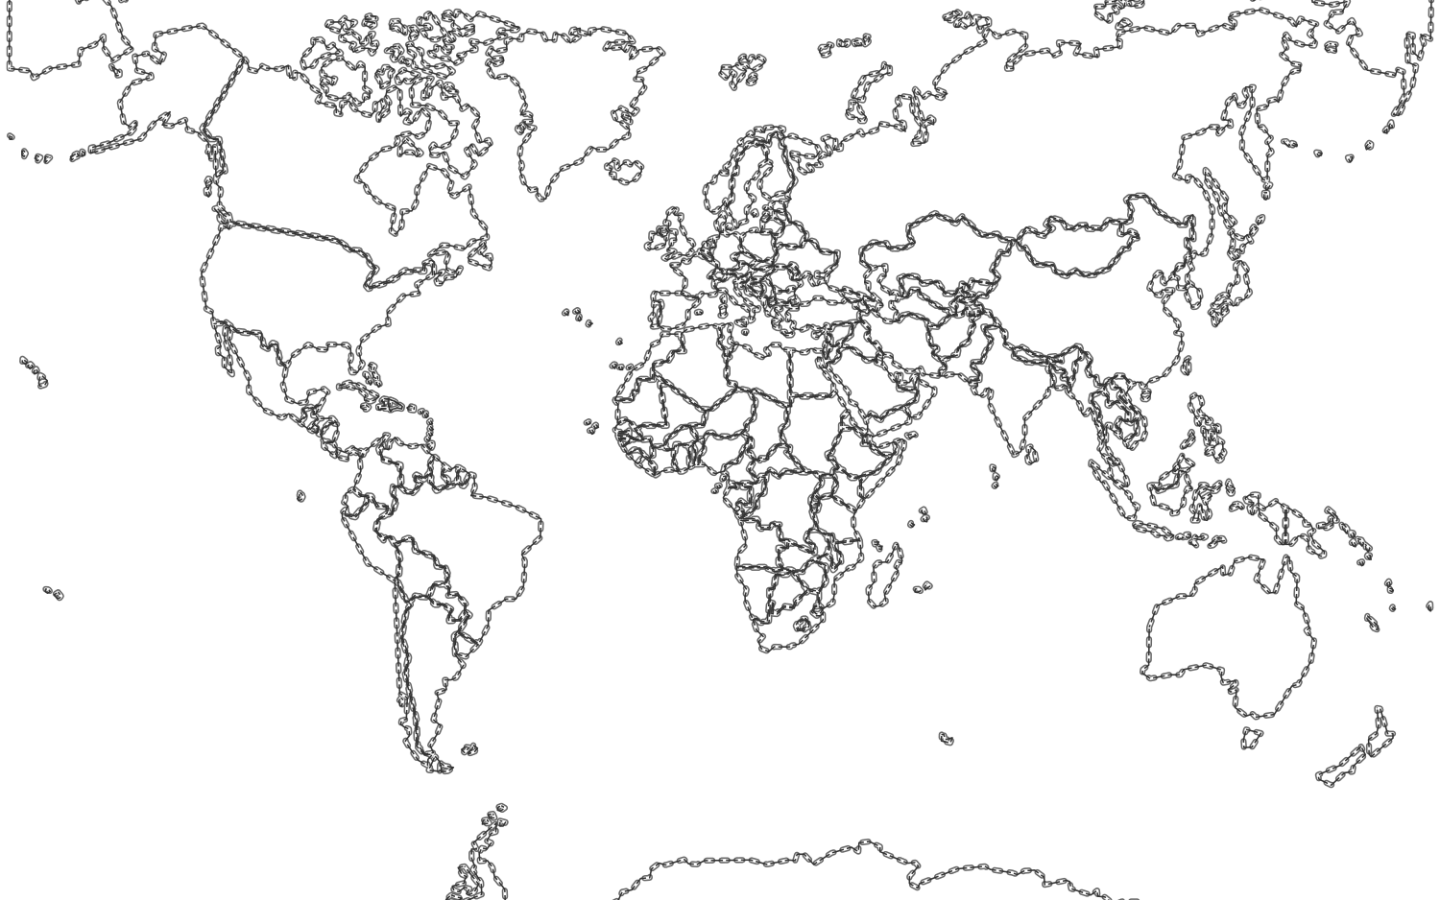 World Map Coloring Page For Kids at GetDrawings.com | Free ...